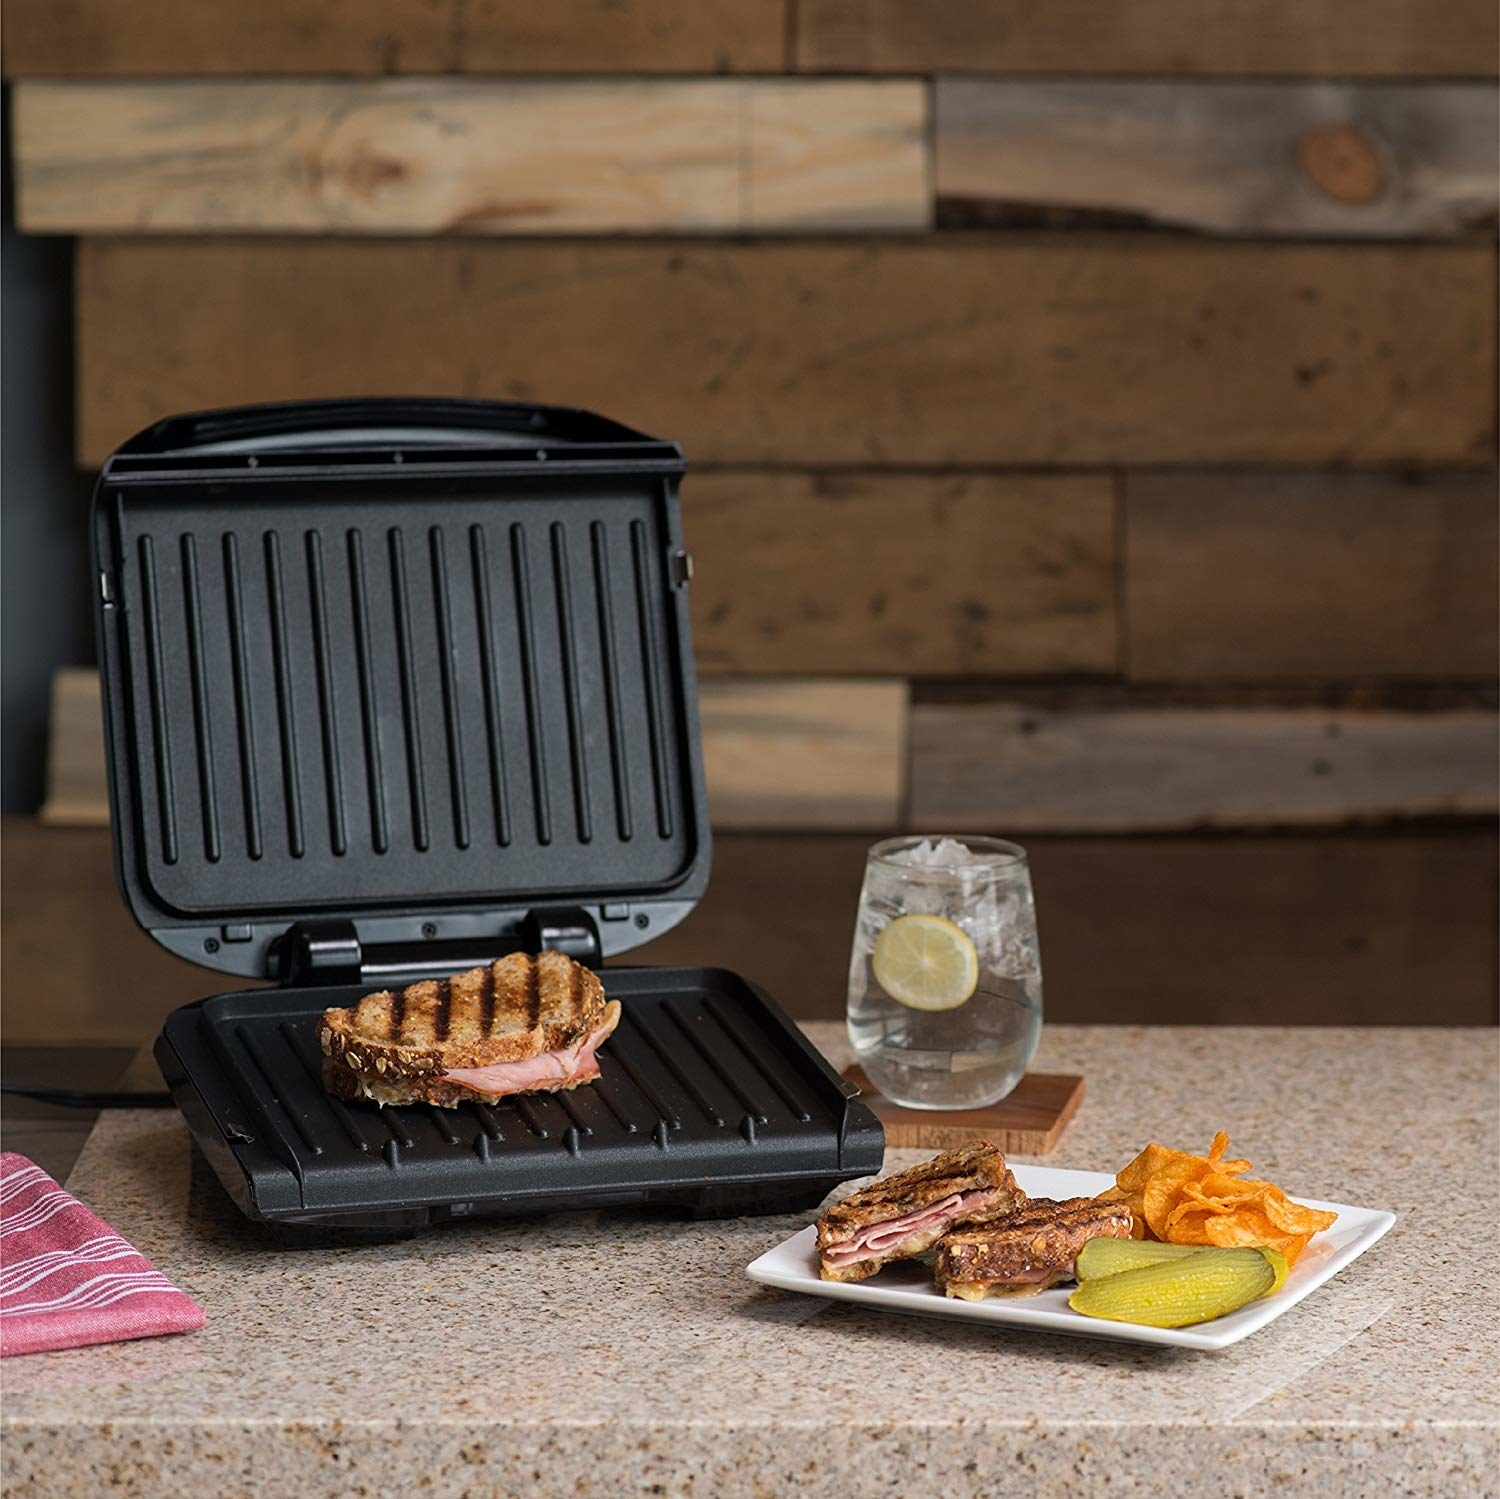 The grill being used to toast a sandwich